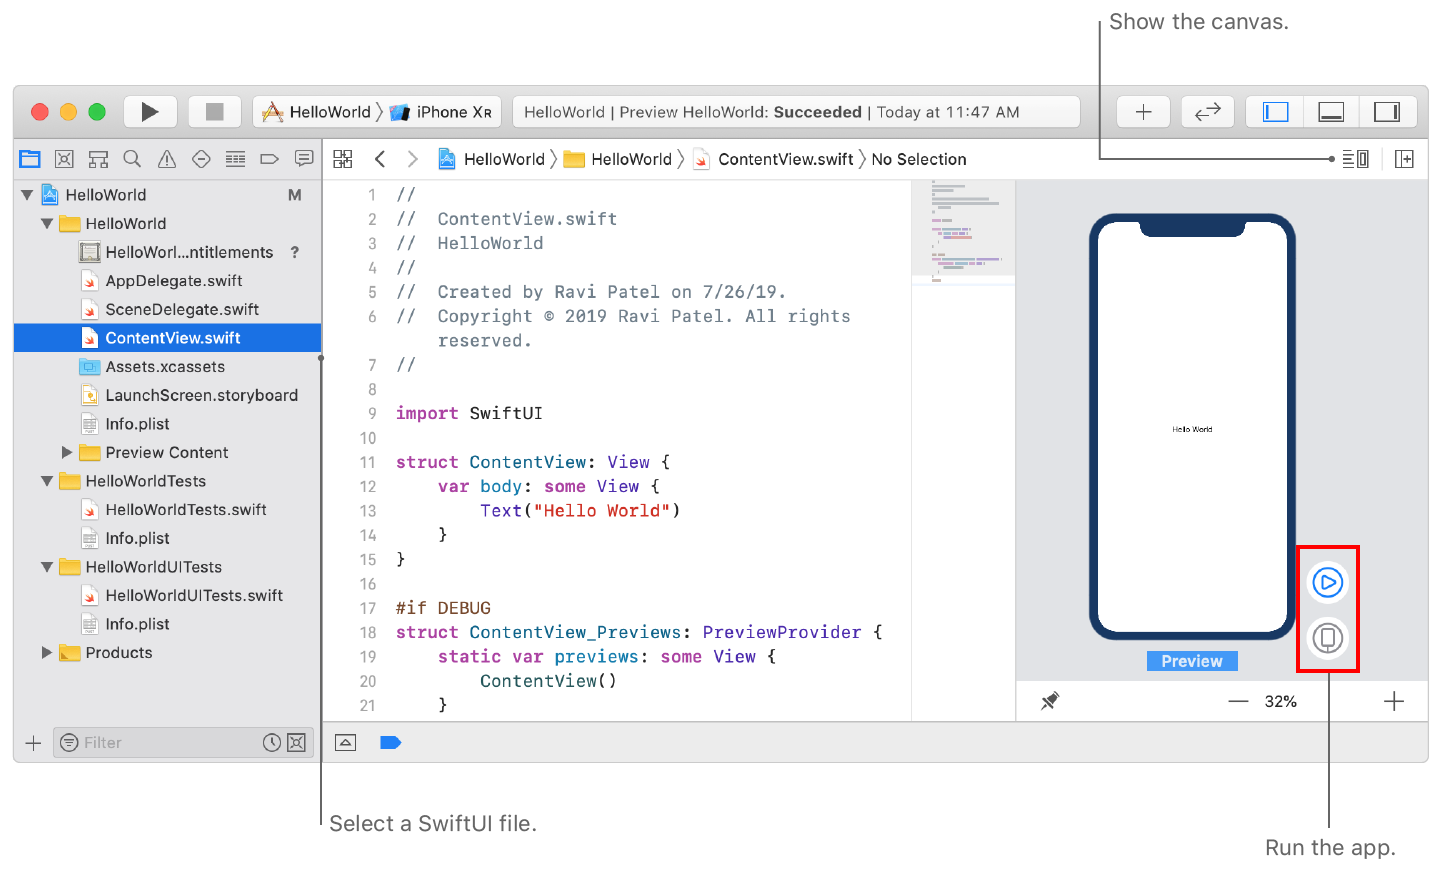 Screenshot showing a SwiftUI file selected in the project navigator and preview displayed in the editor area.